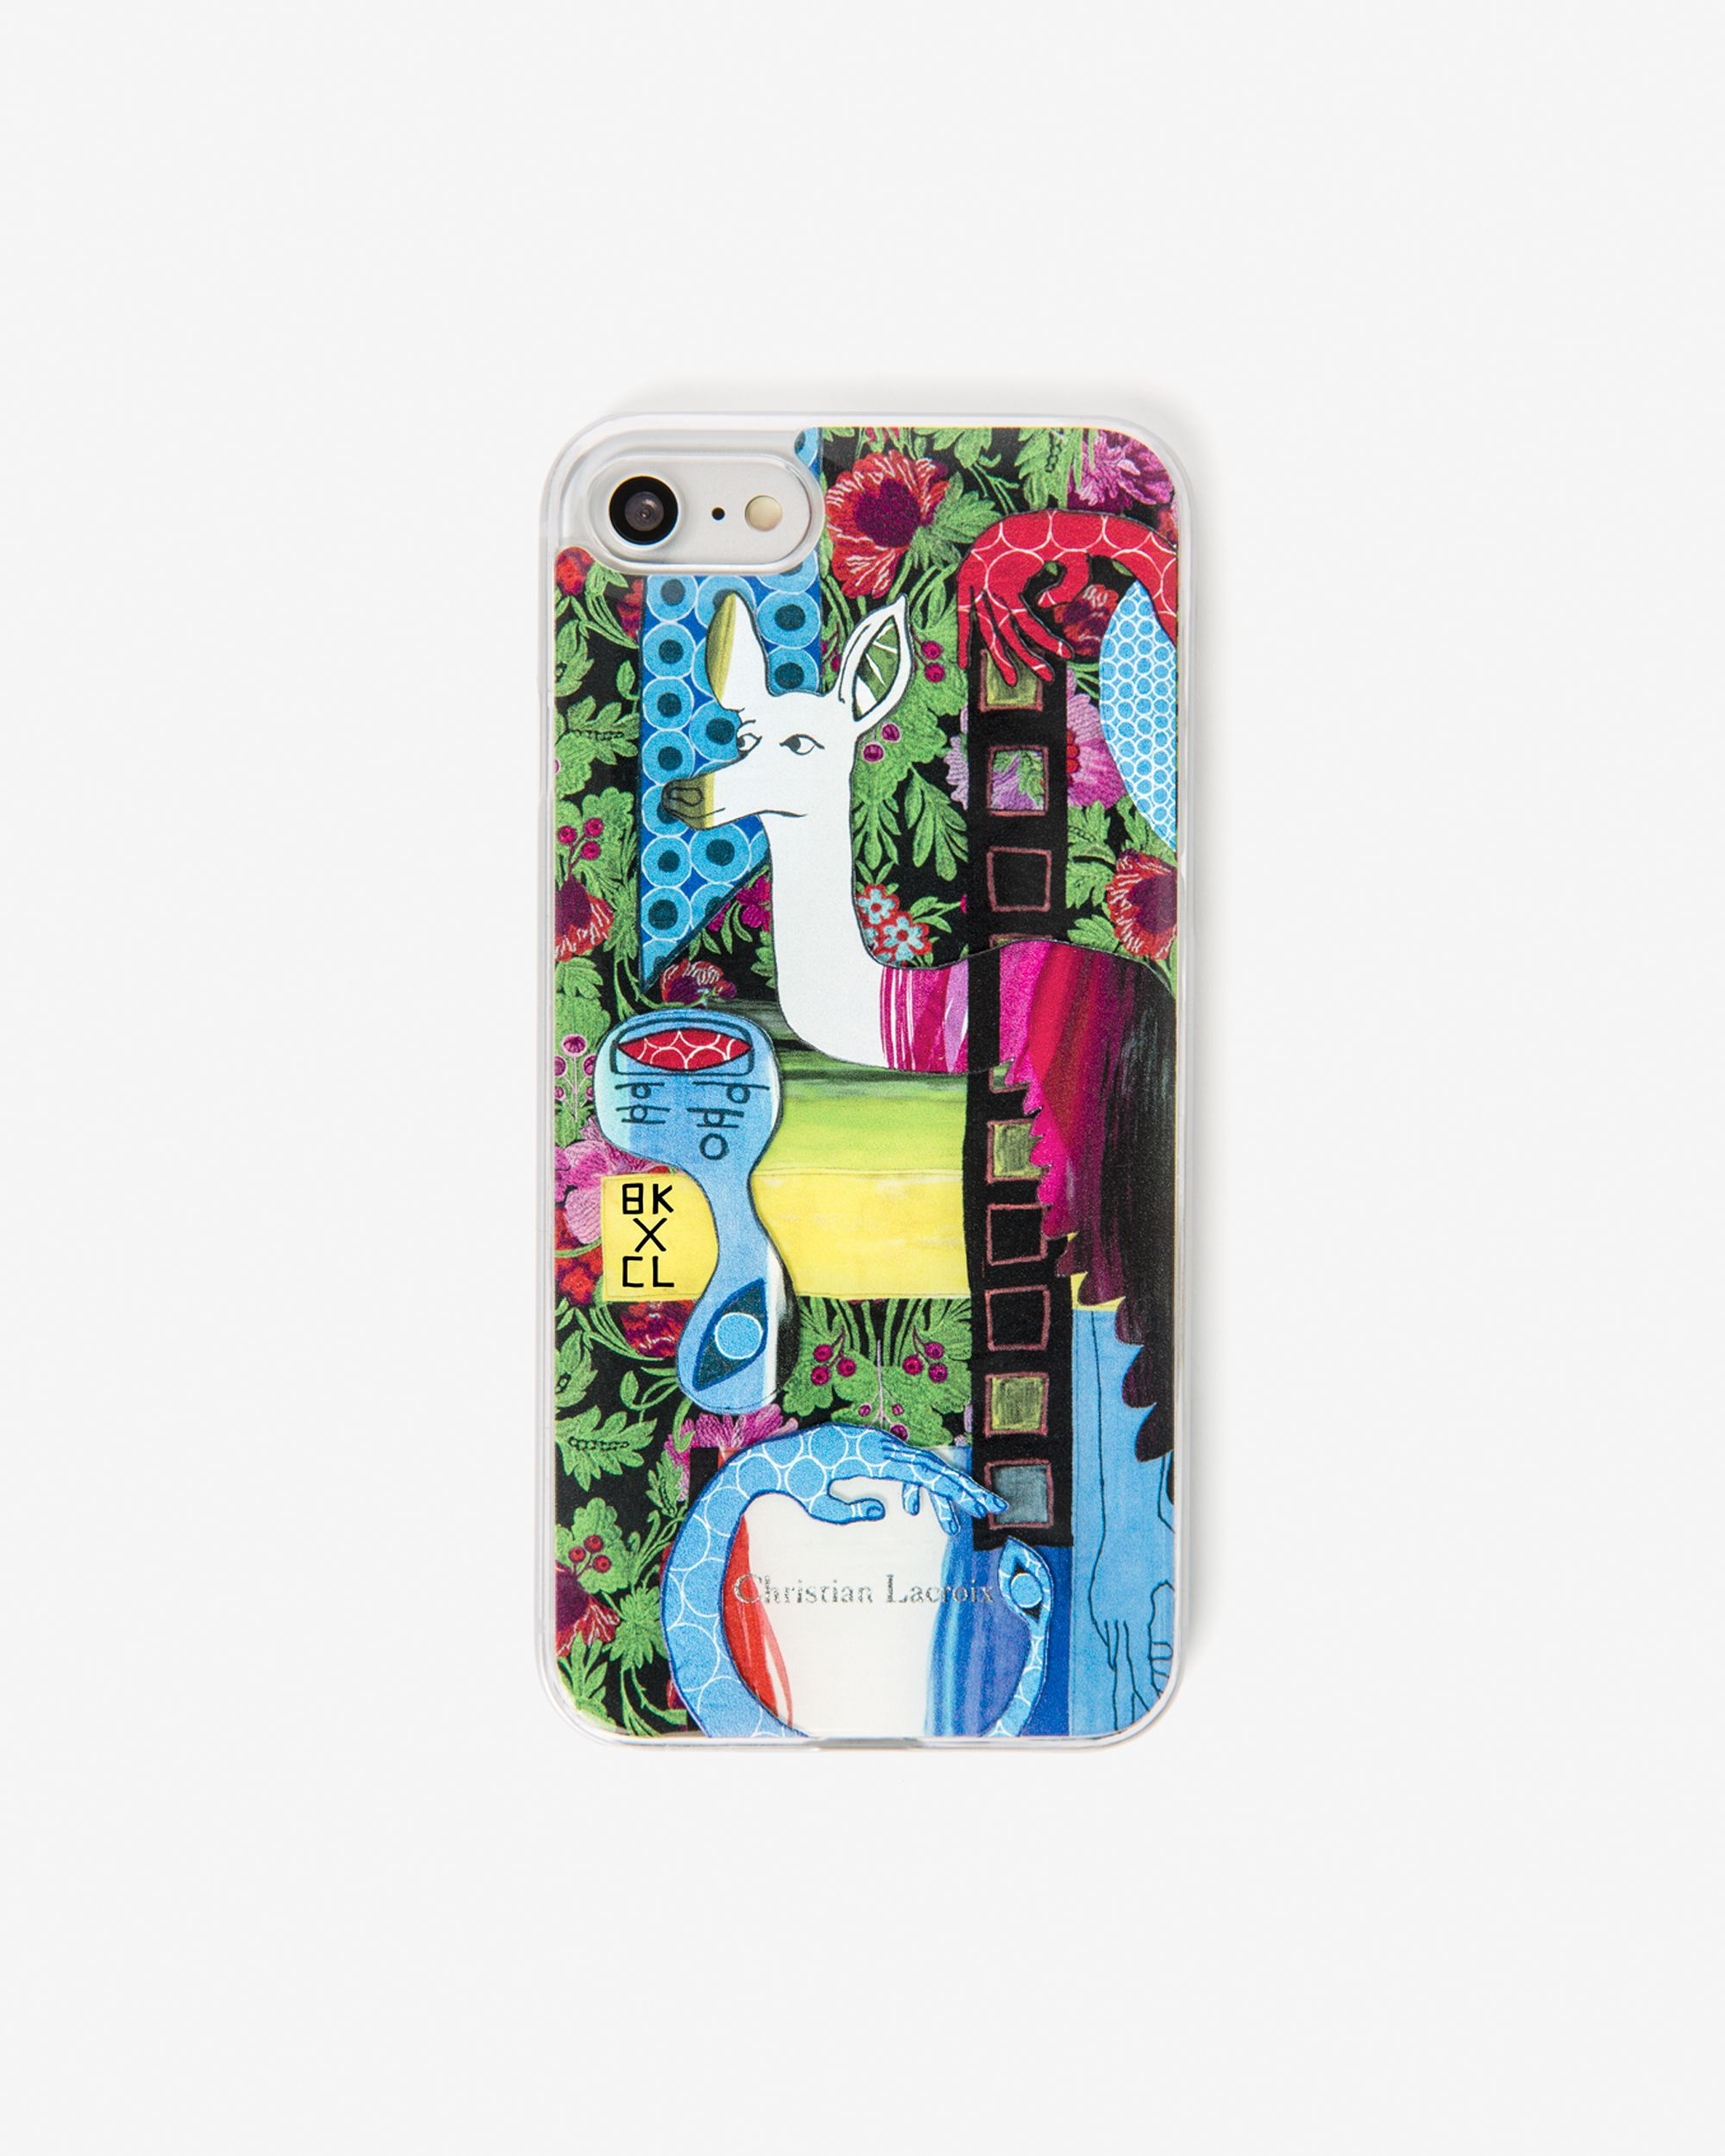 Lacroix_30_ans_CL_x_BK_Iphone_case_Jardin_secret_5a0492742e8a0.jpg